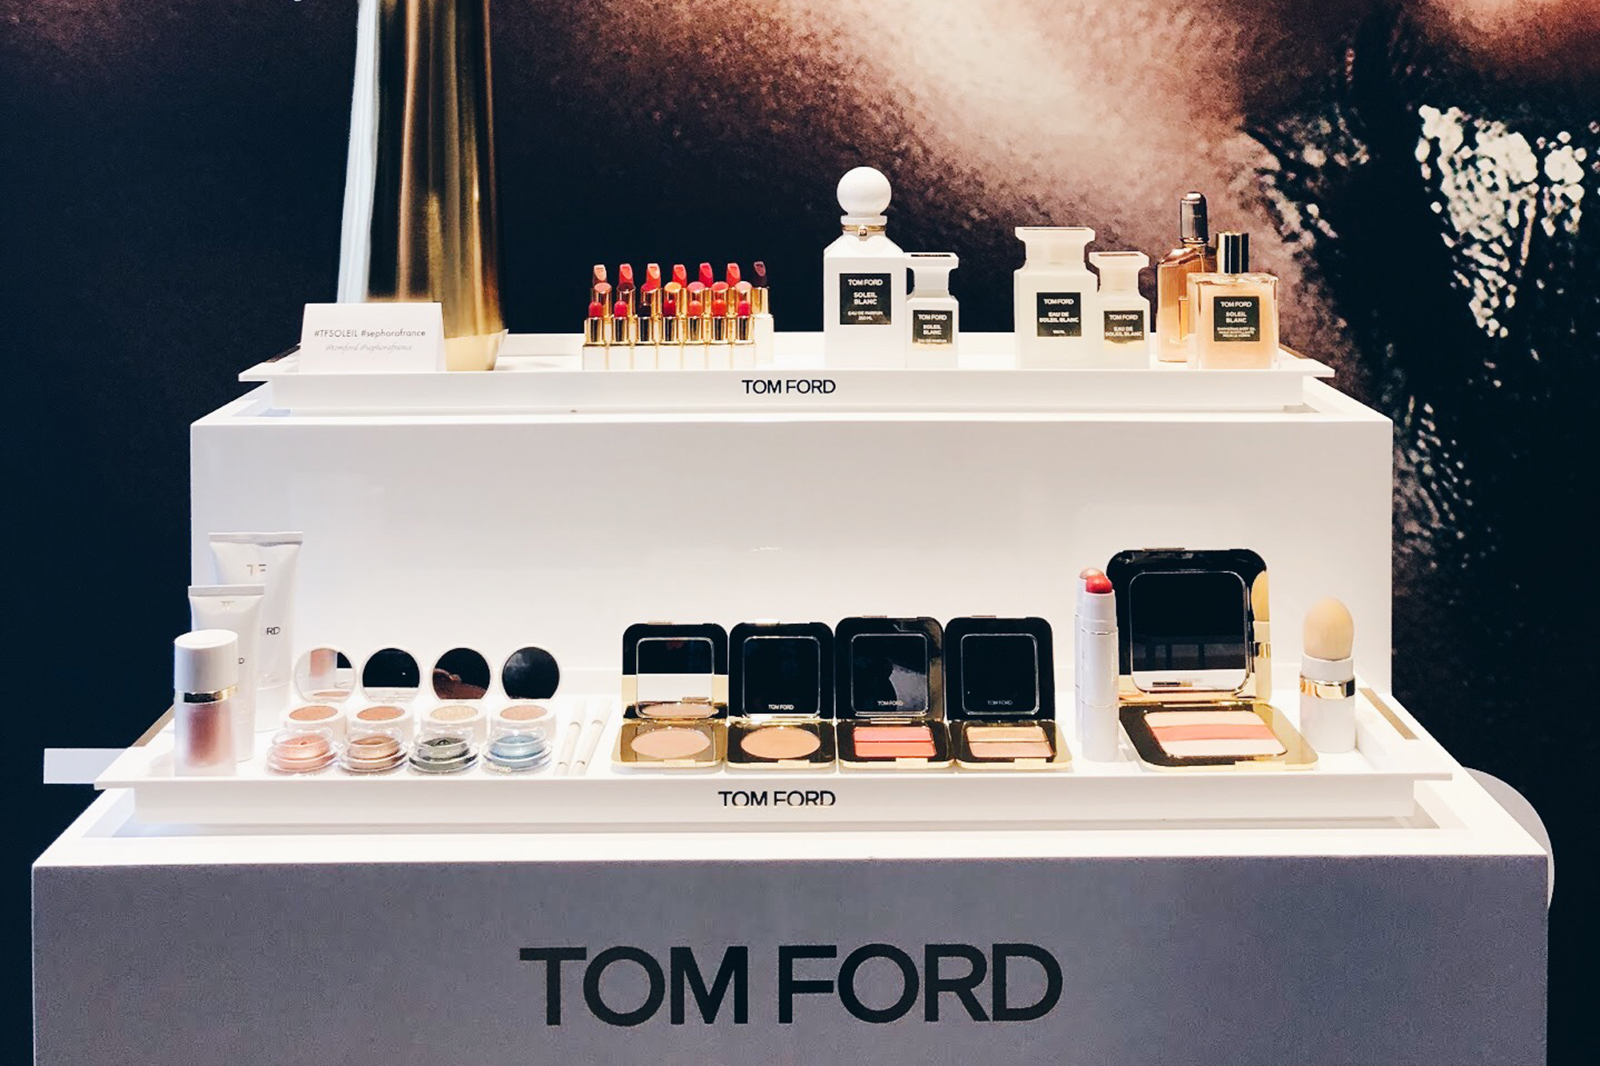 tom ford maquillage arrive chez sephora